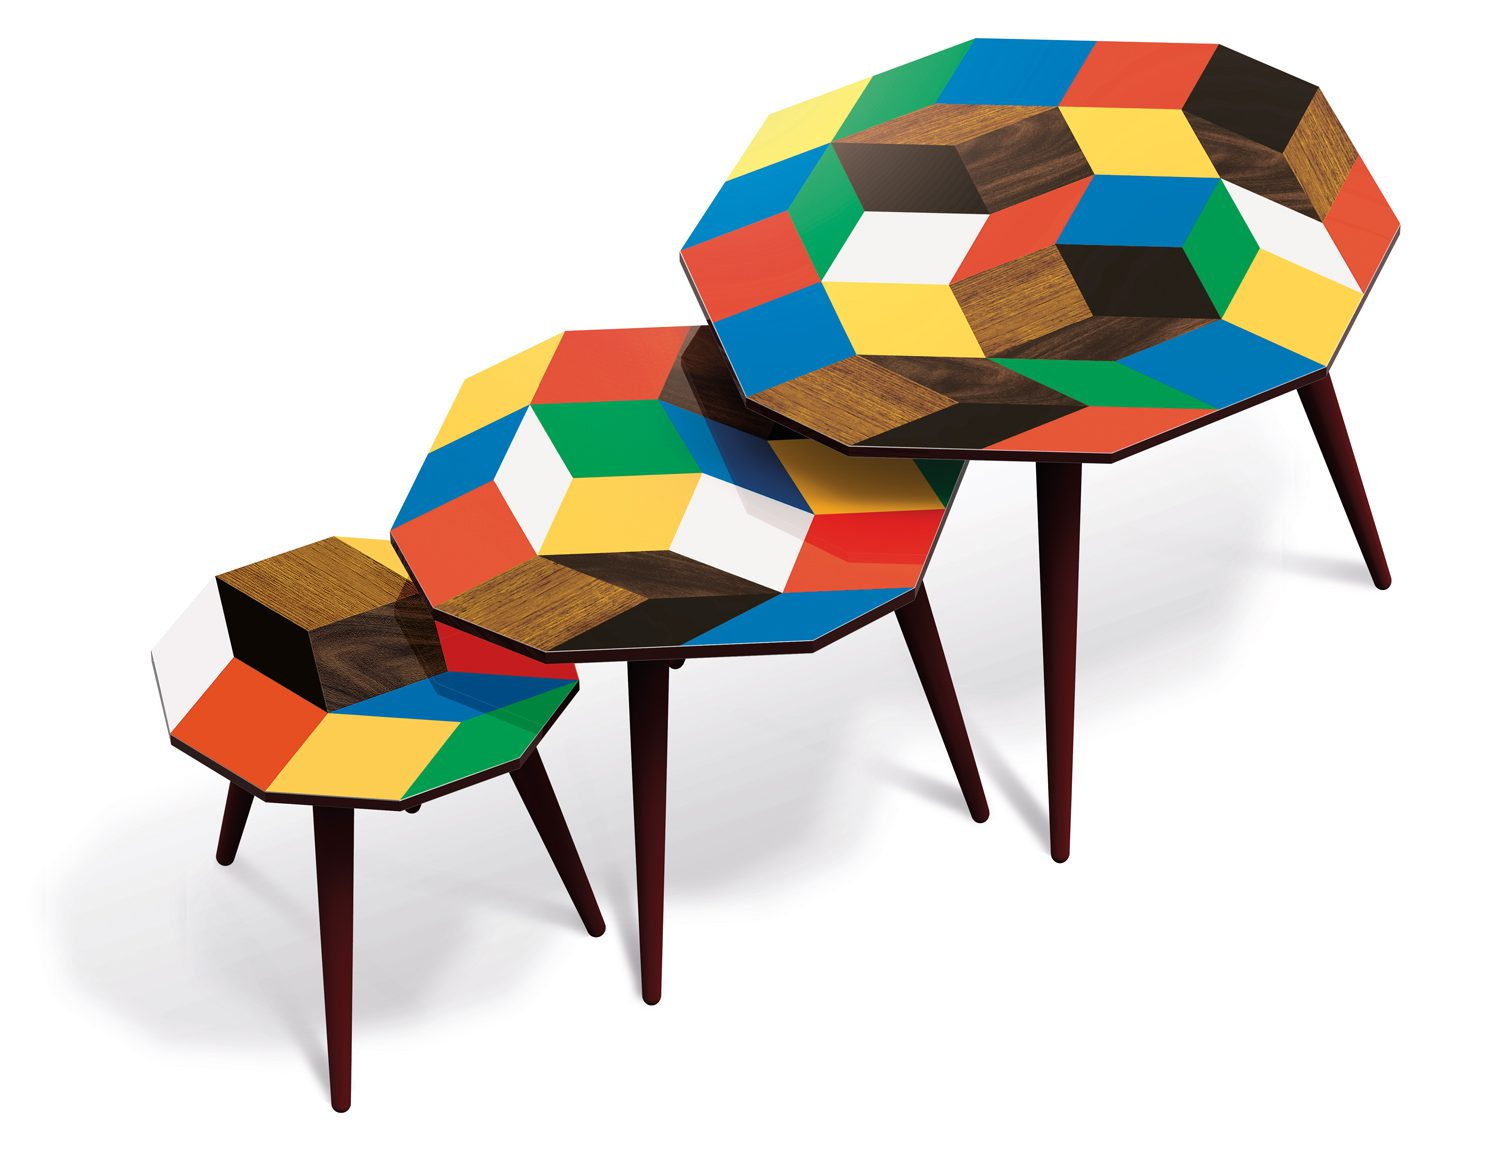 Trio de tables basses aux motifs de pavages de Penrose Playwood, design Ich&Kar, édition Bazartherapy